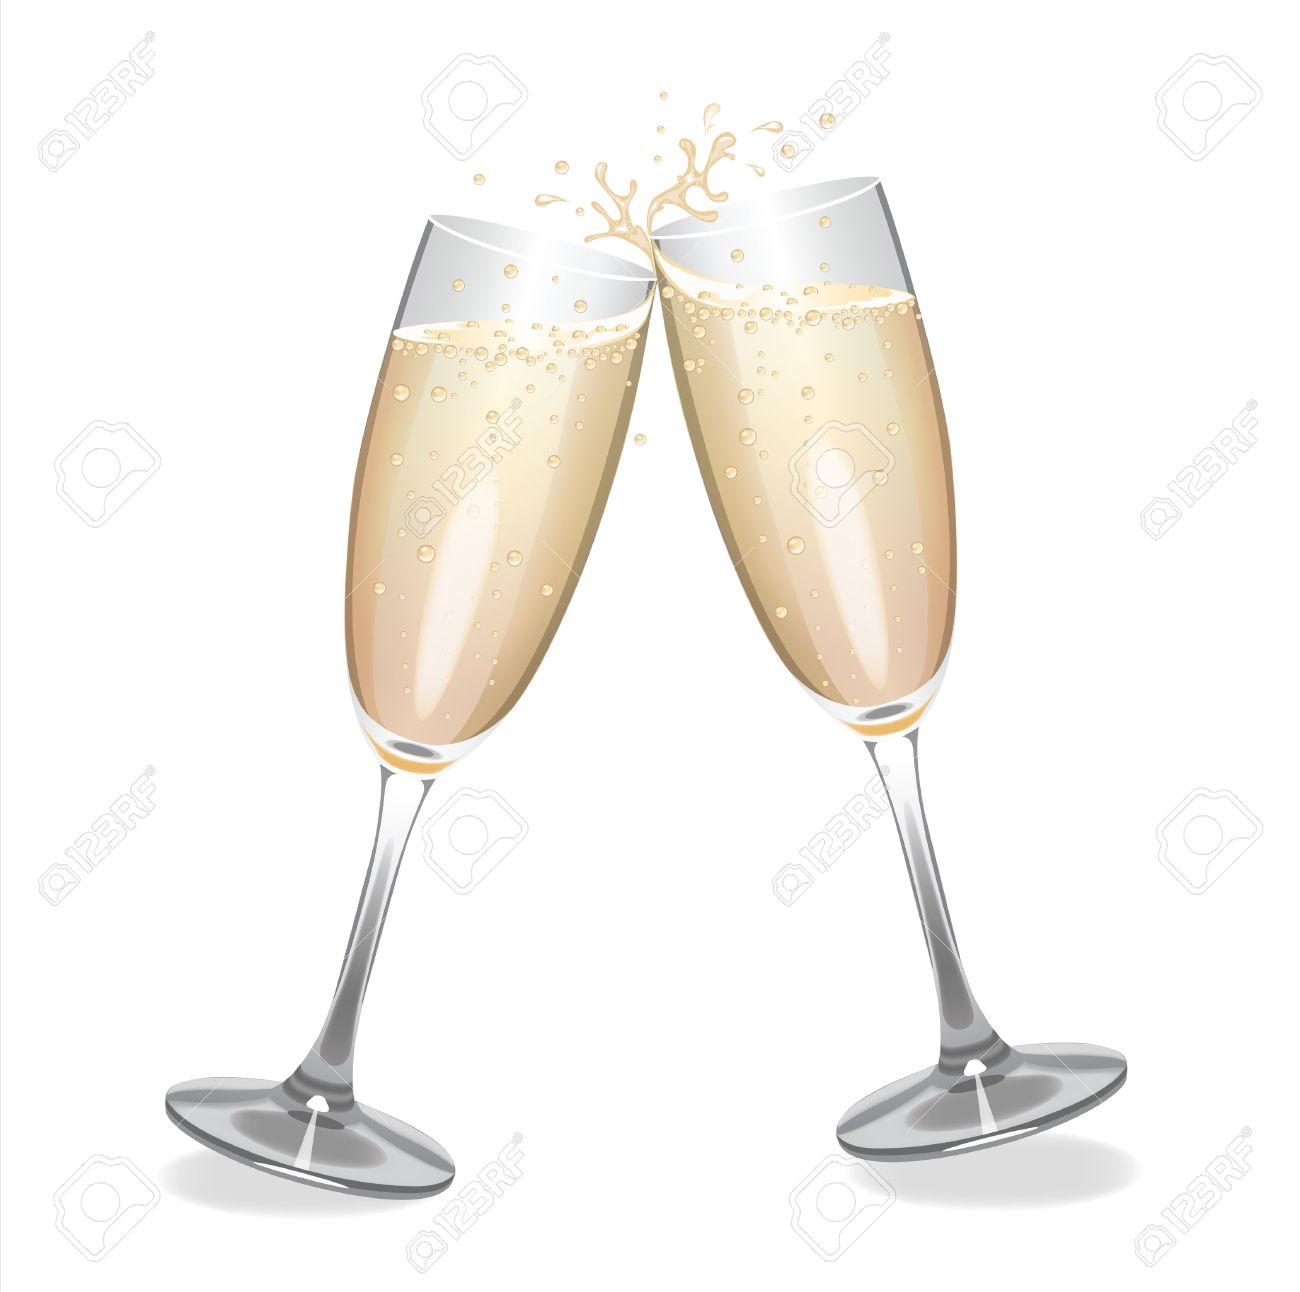 hight resolution of champagne flutes clipart 1